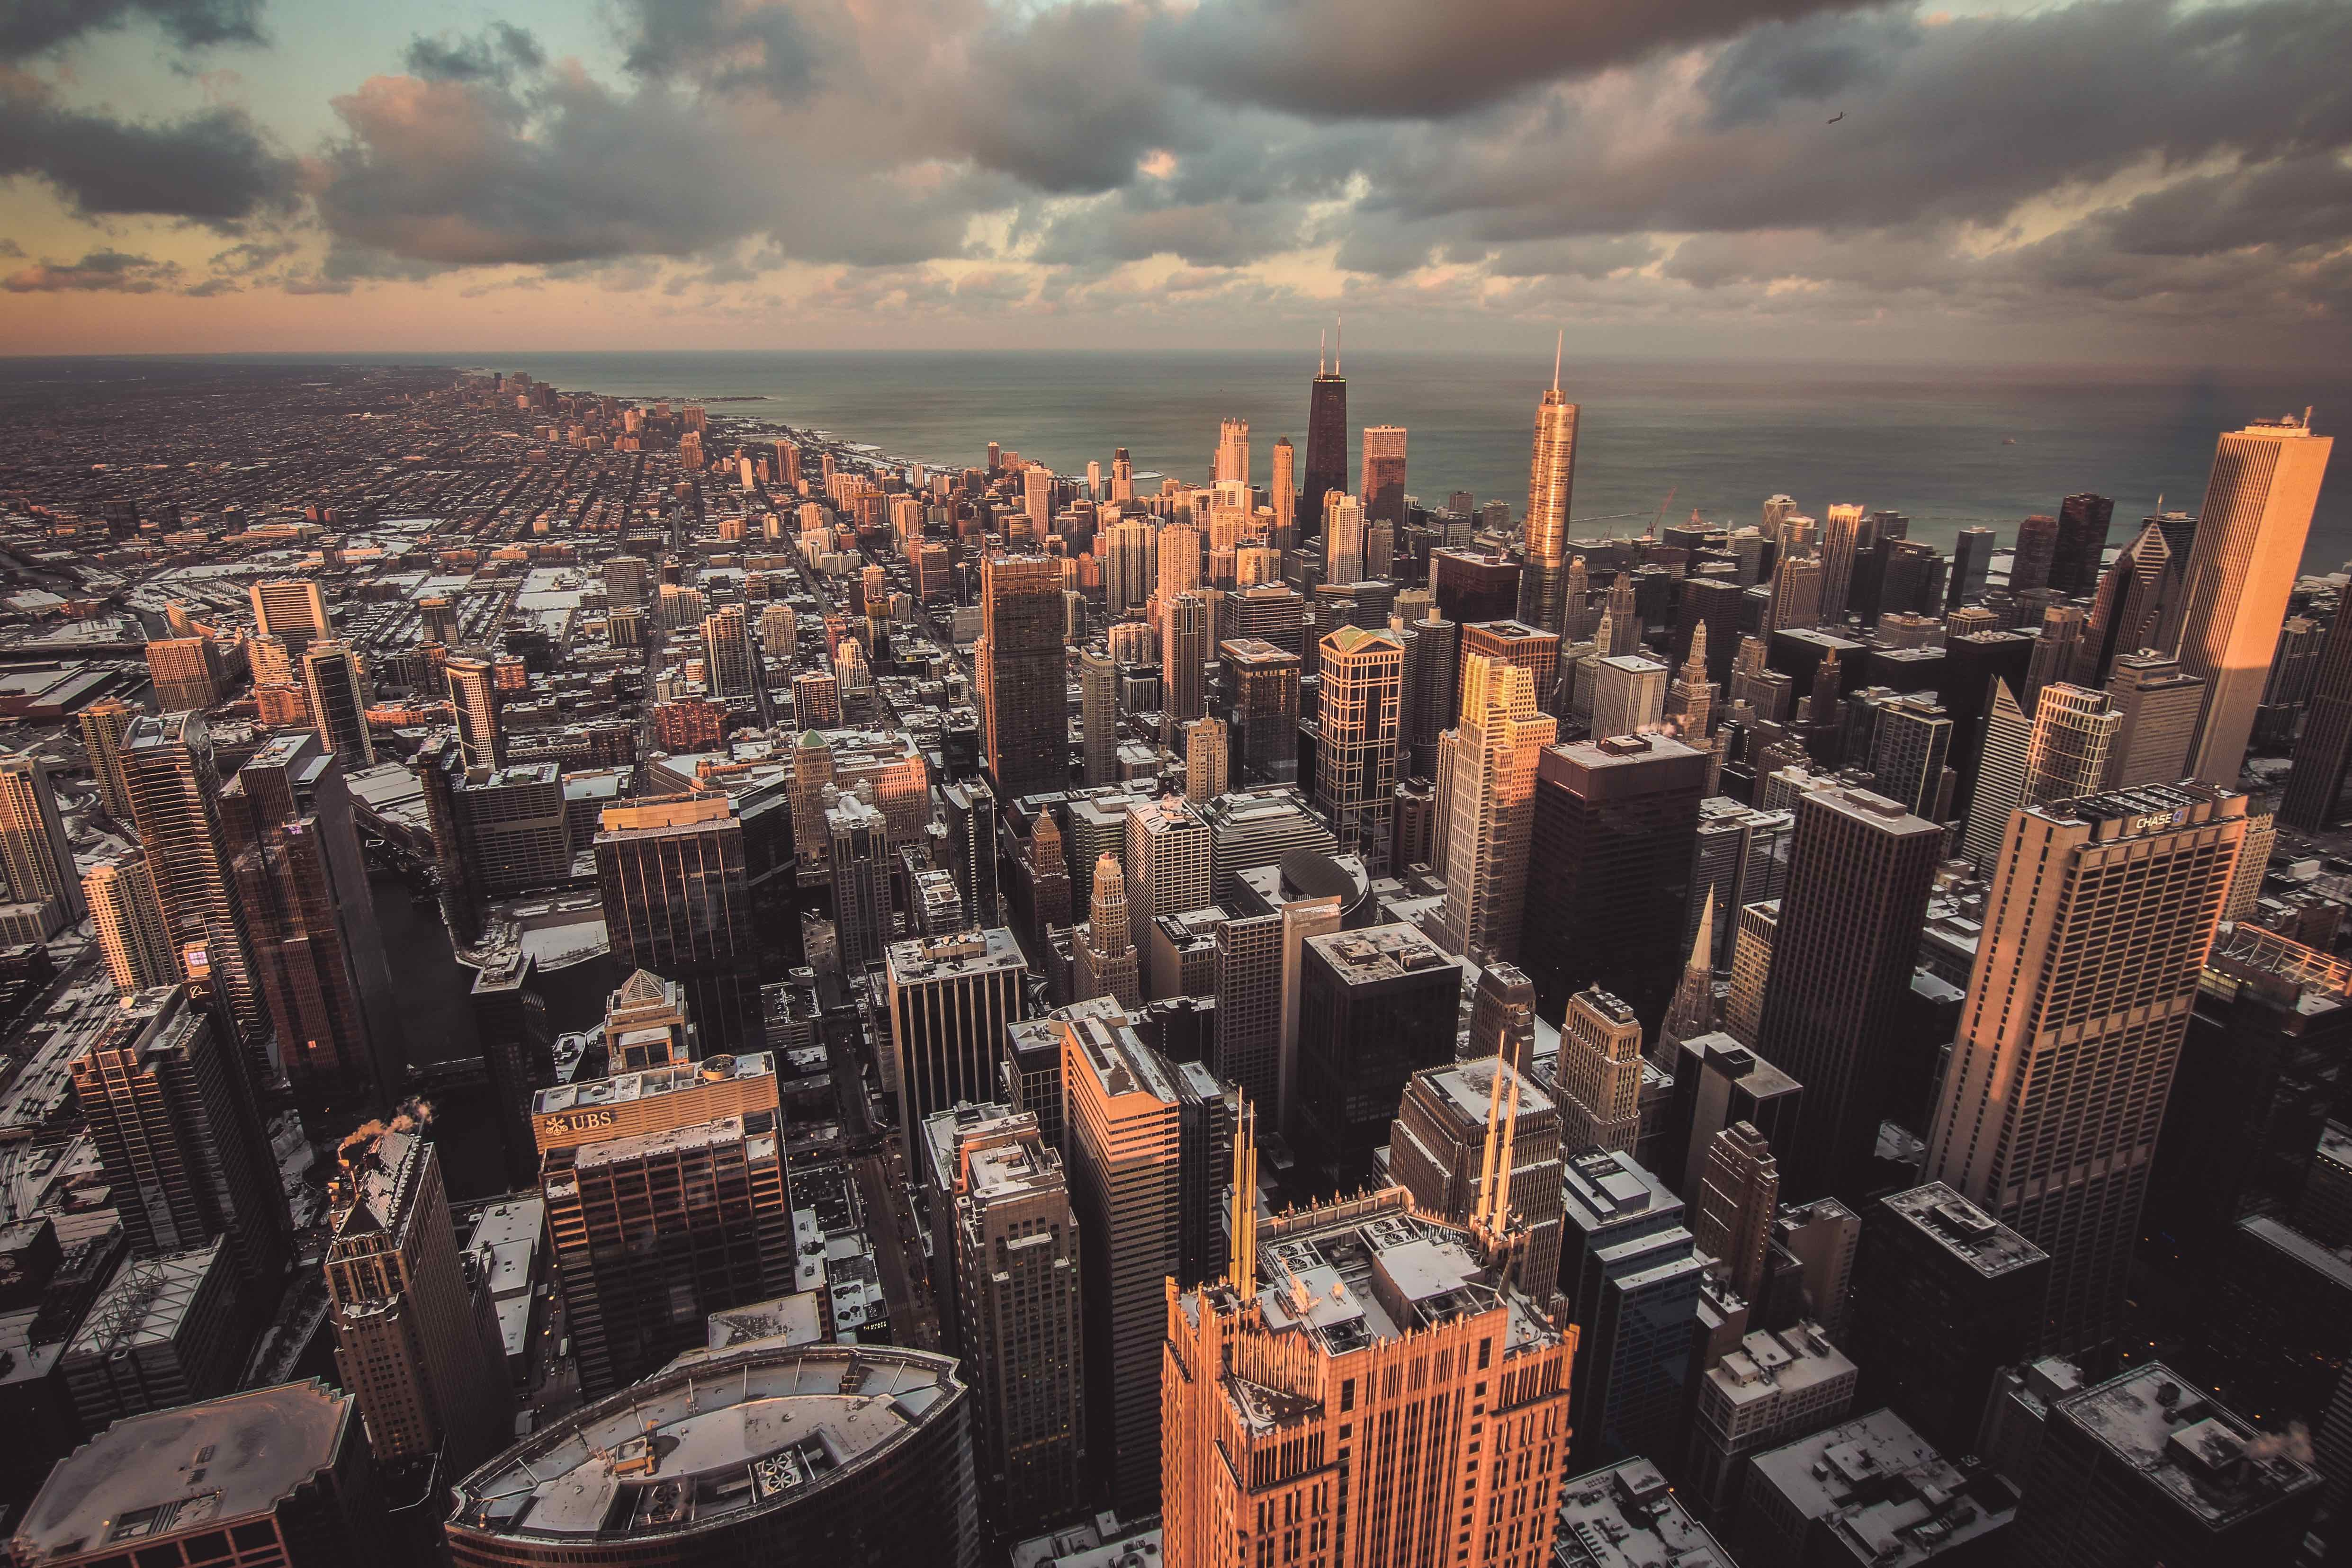 The skyline of Chicago and the vast Michigan Lake at sunset